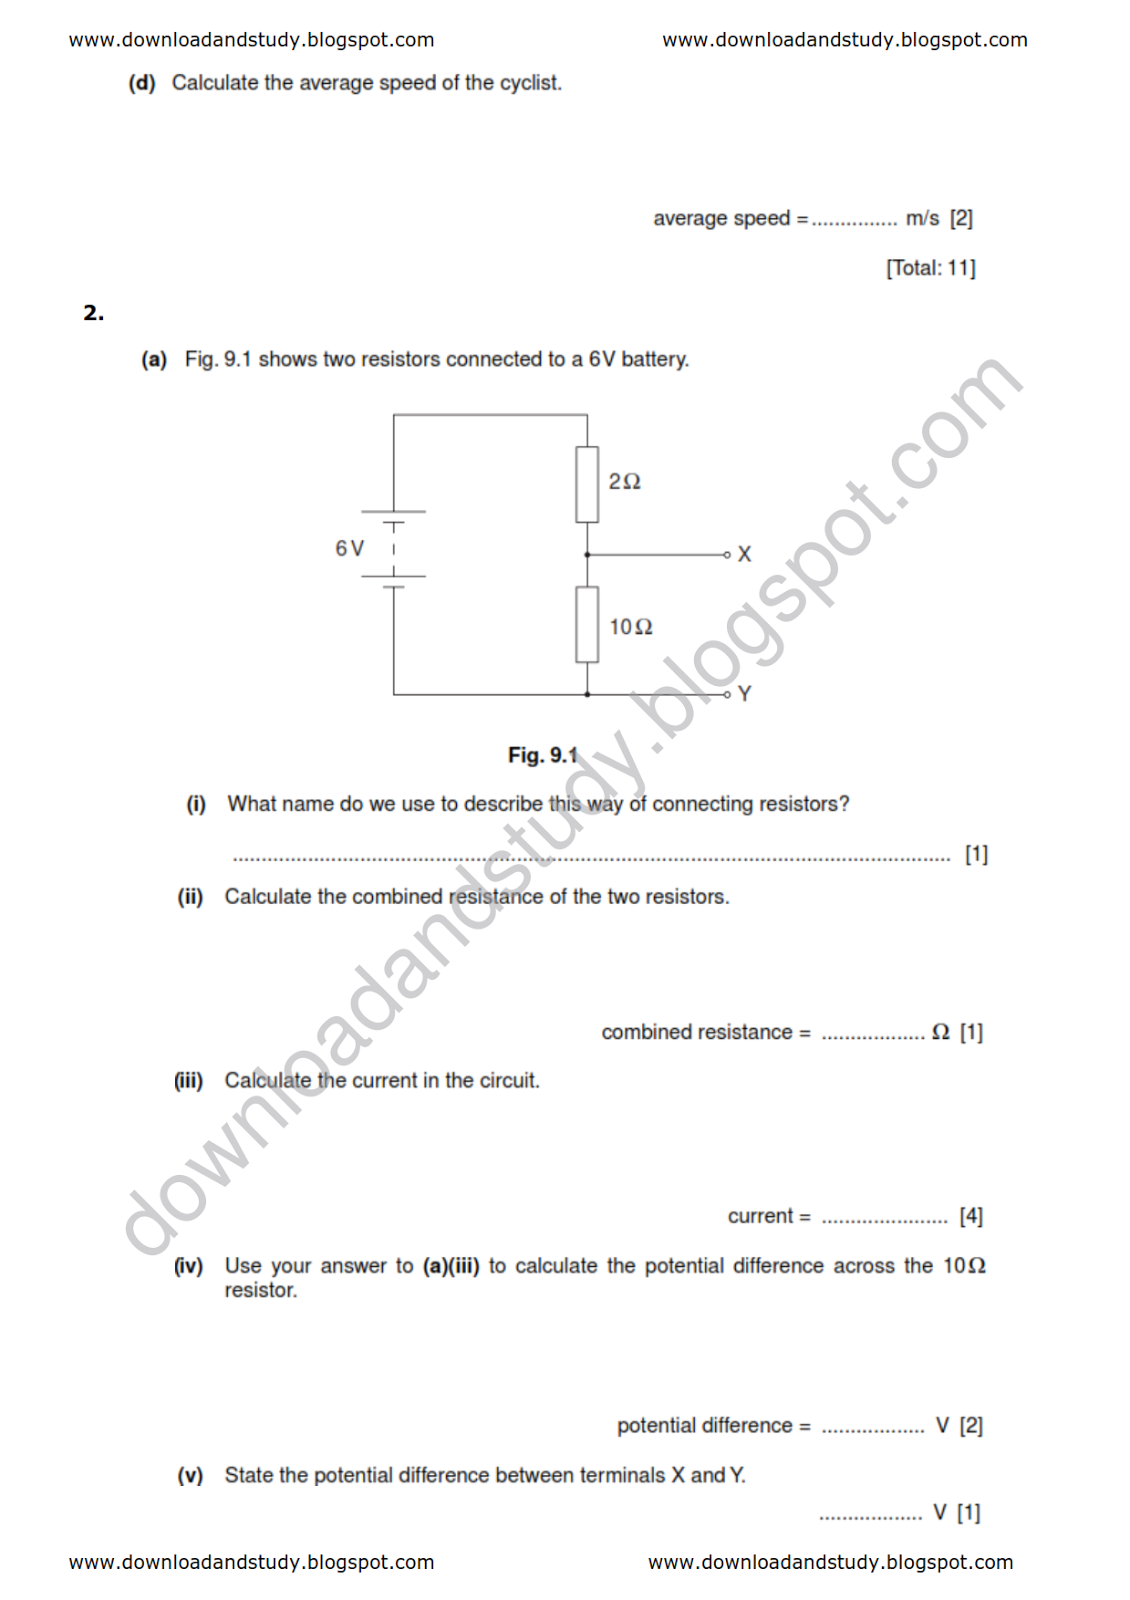 Magnetism Worksheet For 10th Grade Chemistry And Physics